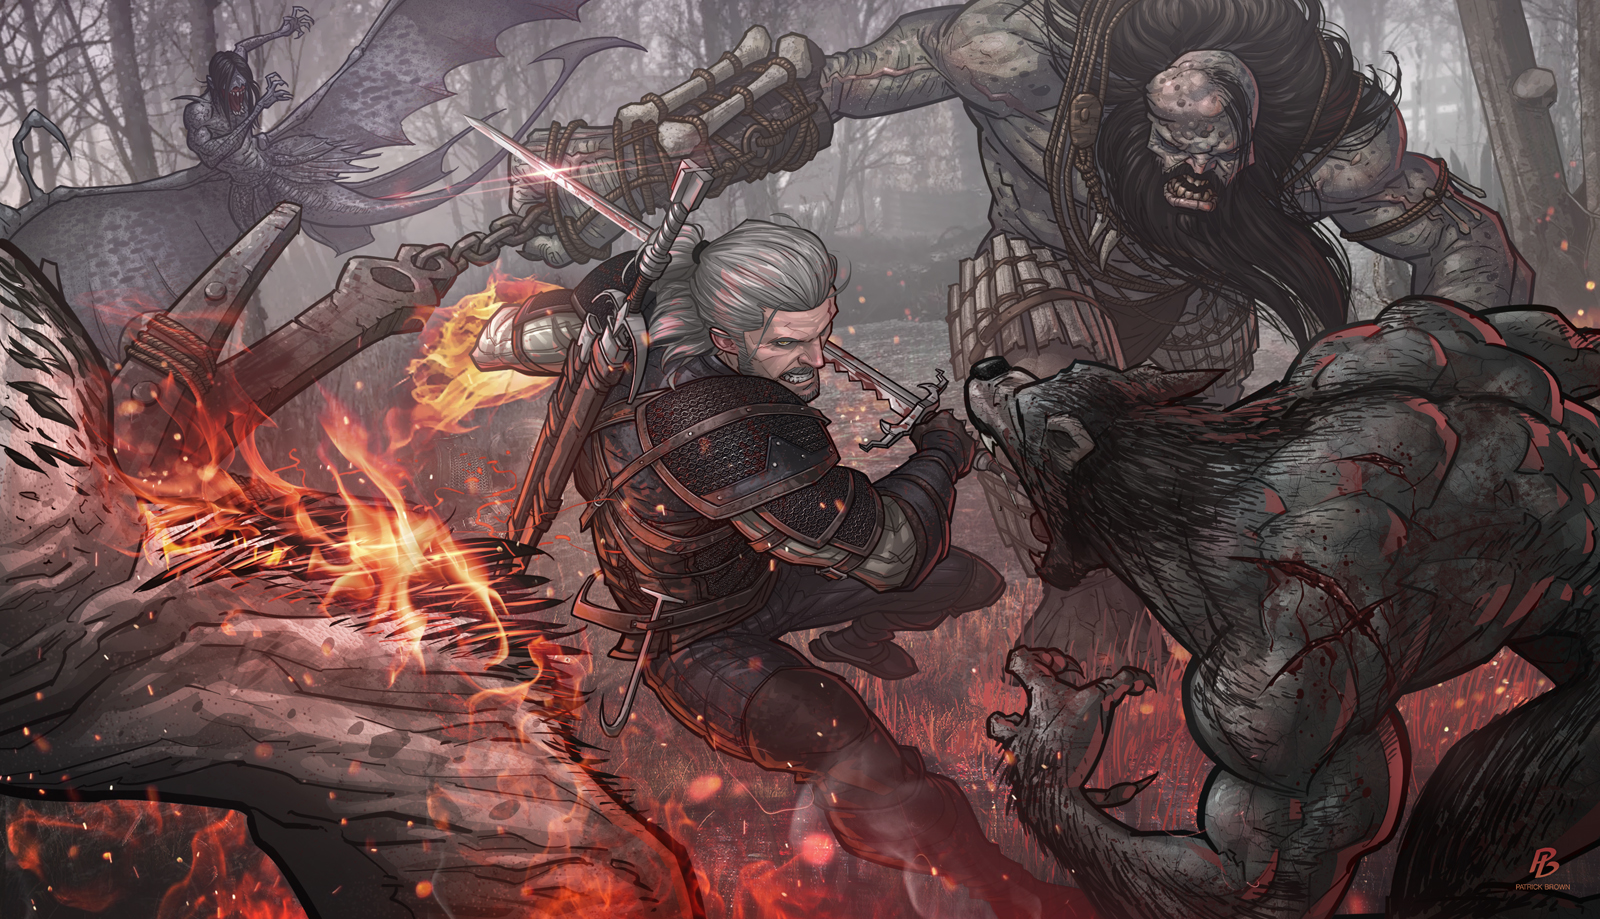 the_witcher_3_by_patrickbrown-d7zu9b9.jp